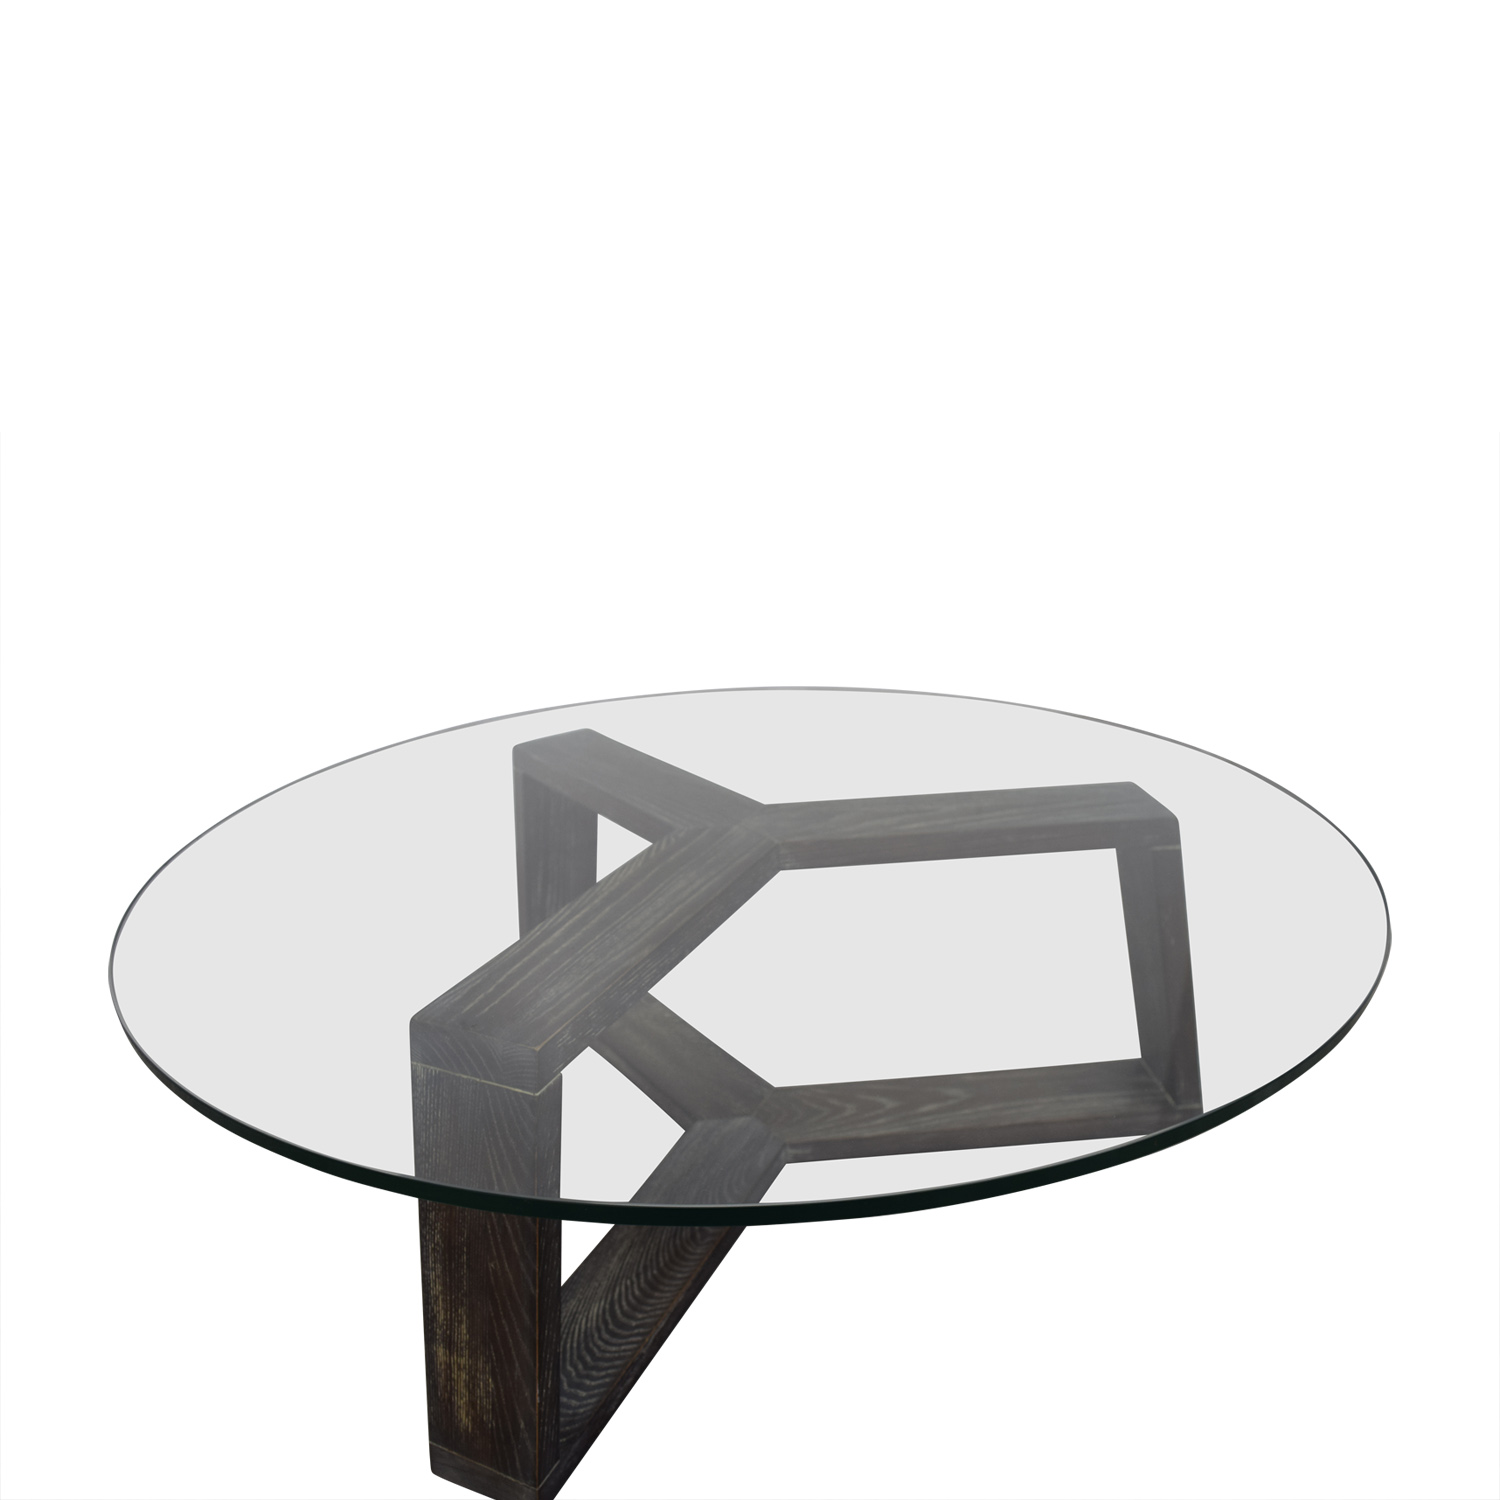 Ottoman Coffee Table Cb2: CB2 CB2 Round Glass And Wood Coffee Table / Tables